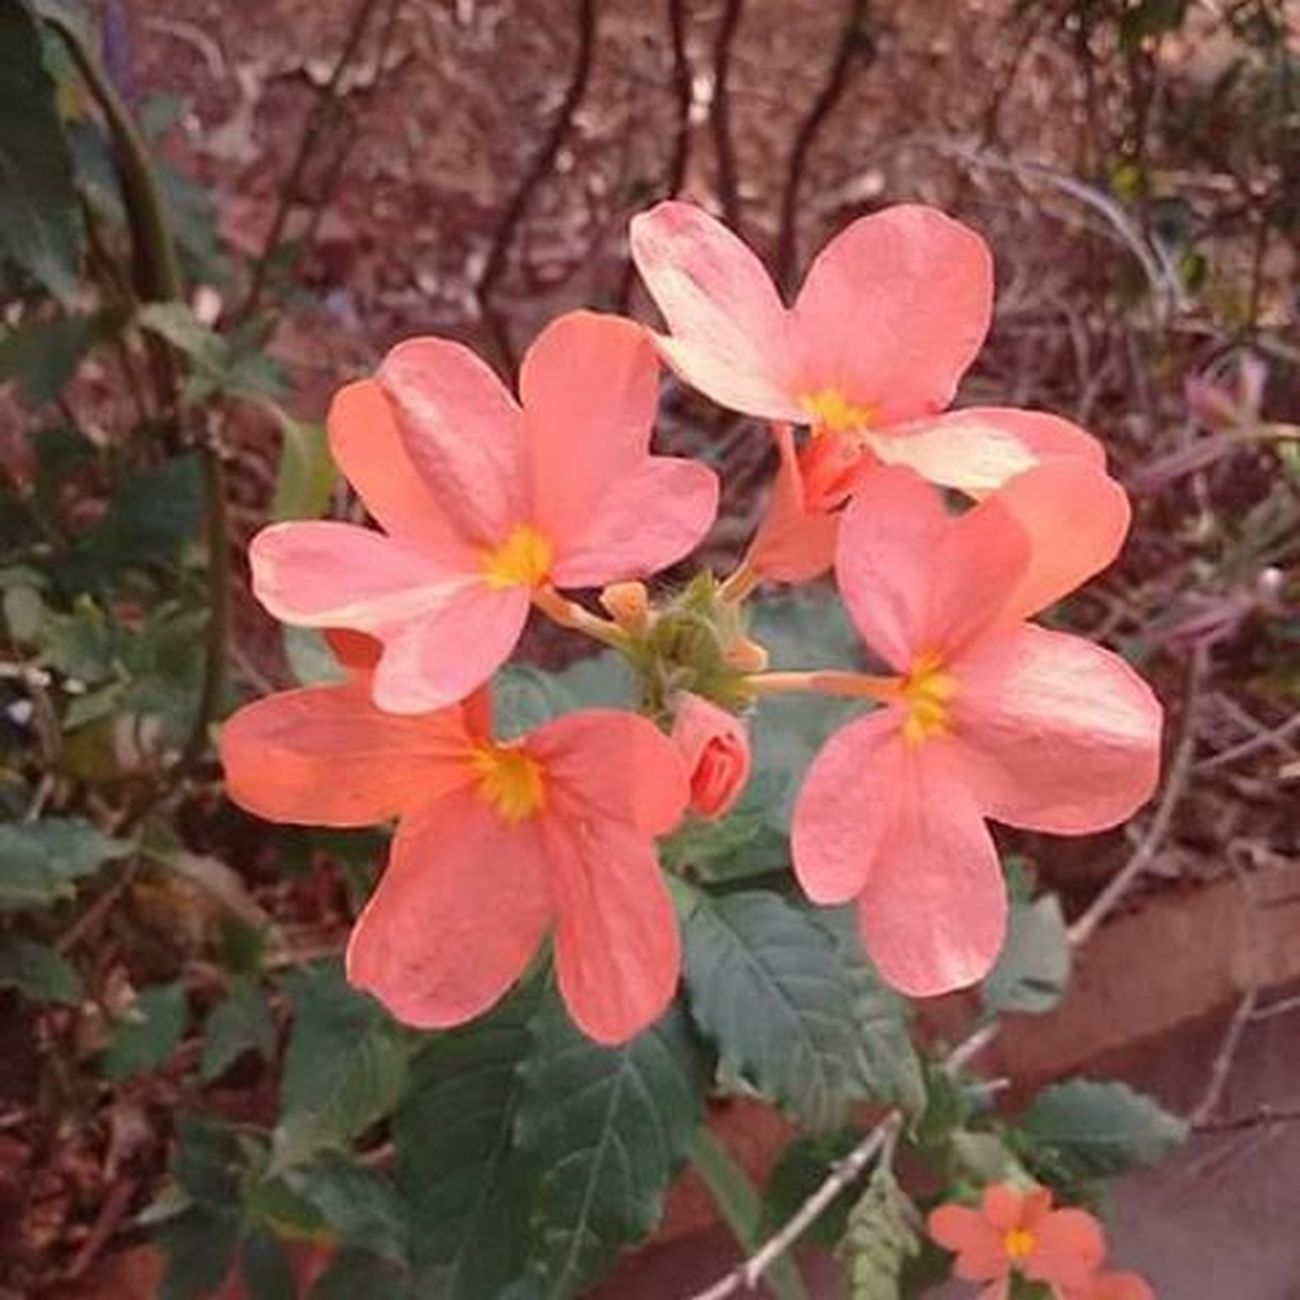 Aboli(firecracker flower).🌼🌼🌼 Flower Plants Orange Nature Life Beautifull India ASIA World Earth Instagram Natgeo Photographer Picoftheday Photooftheday Instagood Instalike Follow Followme Like Like4like Igers Aboli Firecrackerflower